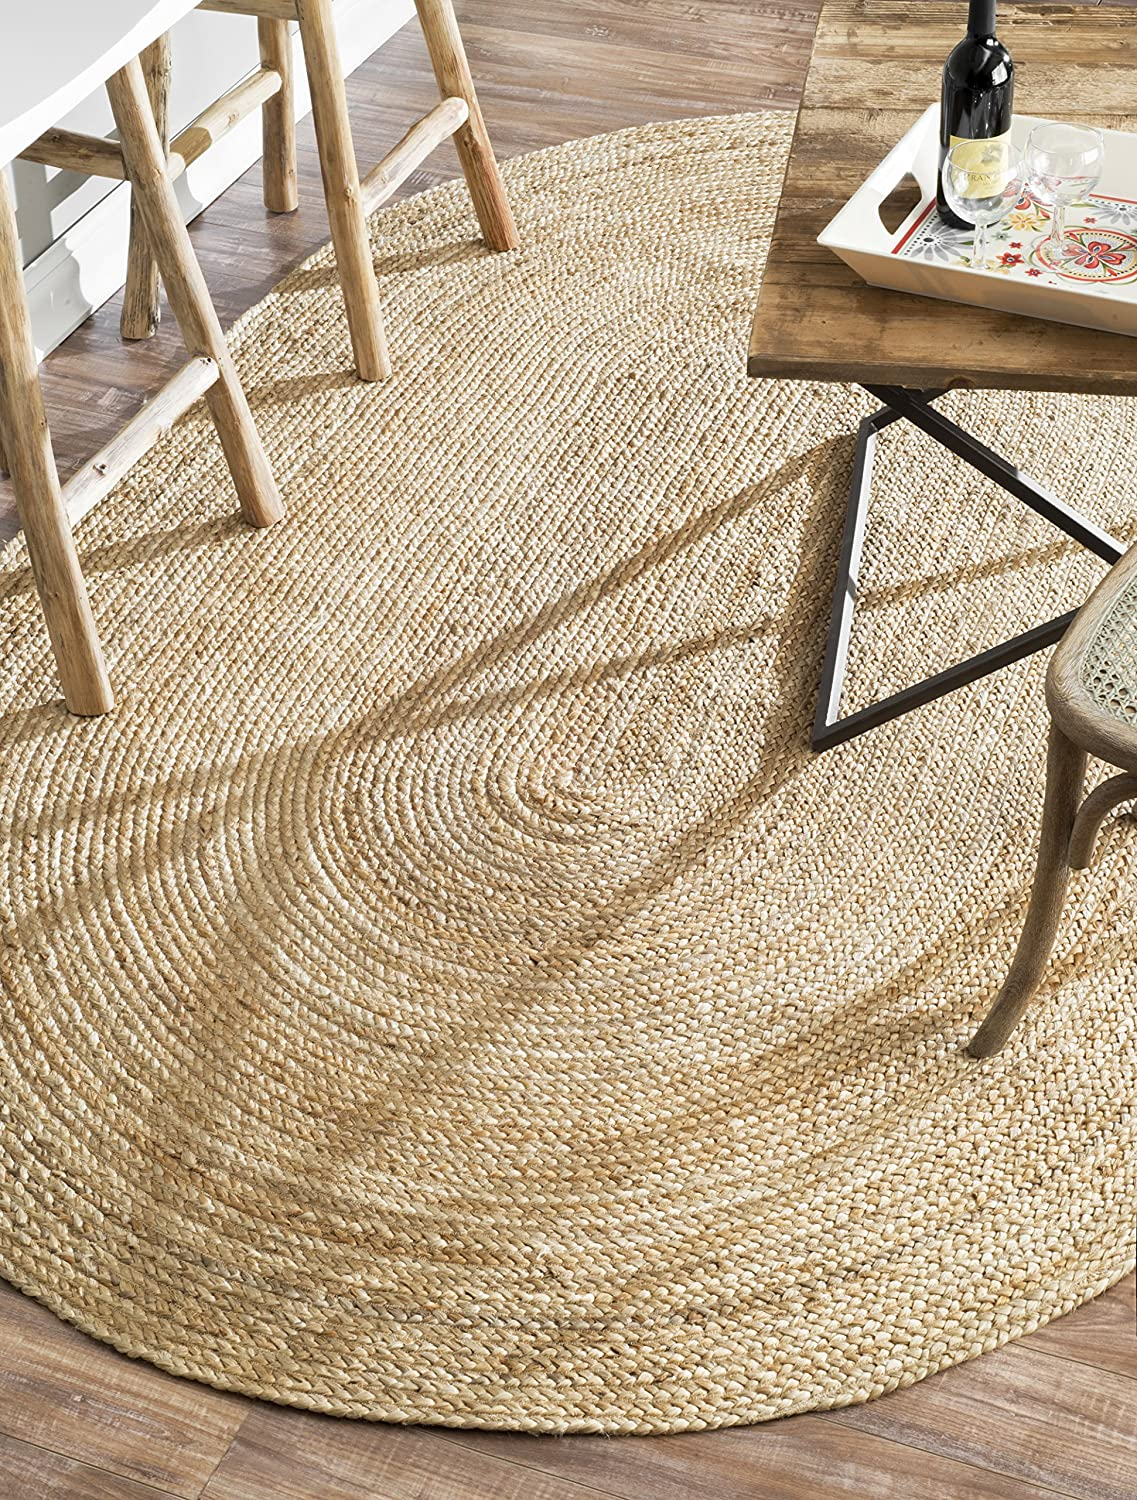 nuLOOM 200TAJT03-2304O Alexa Eco Natural Fiber Braided Reversible Oval Jute Rug (2-Feet 3 X 4-Feet)